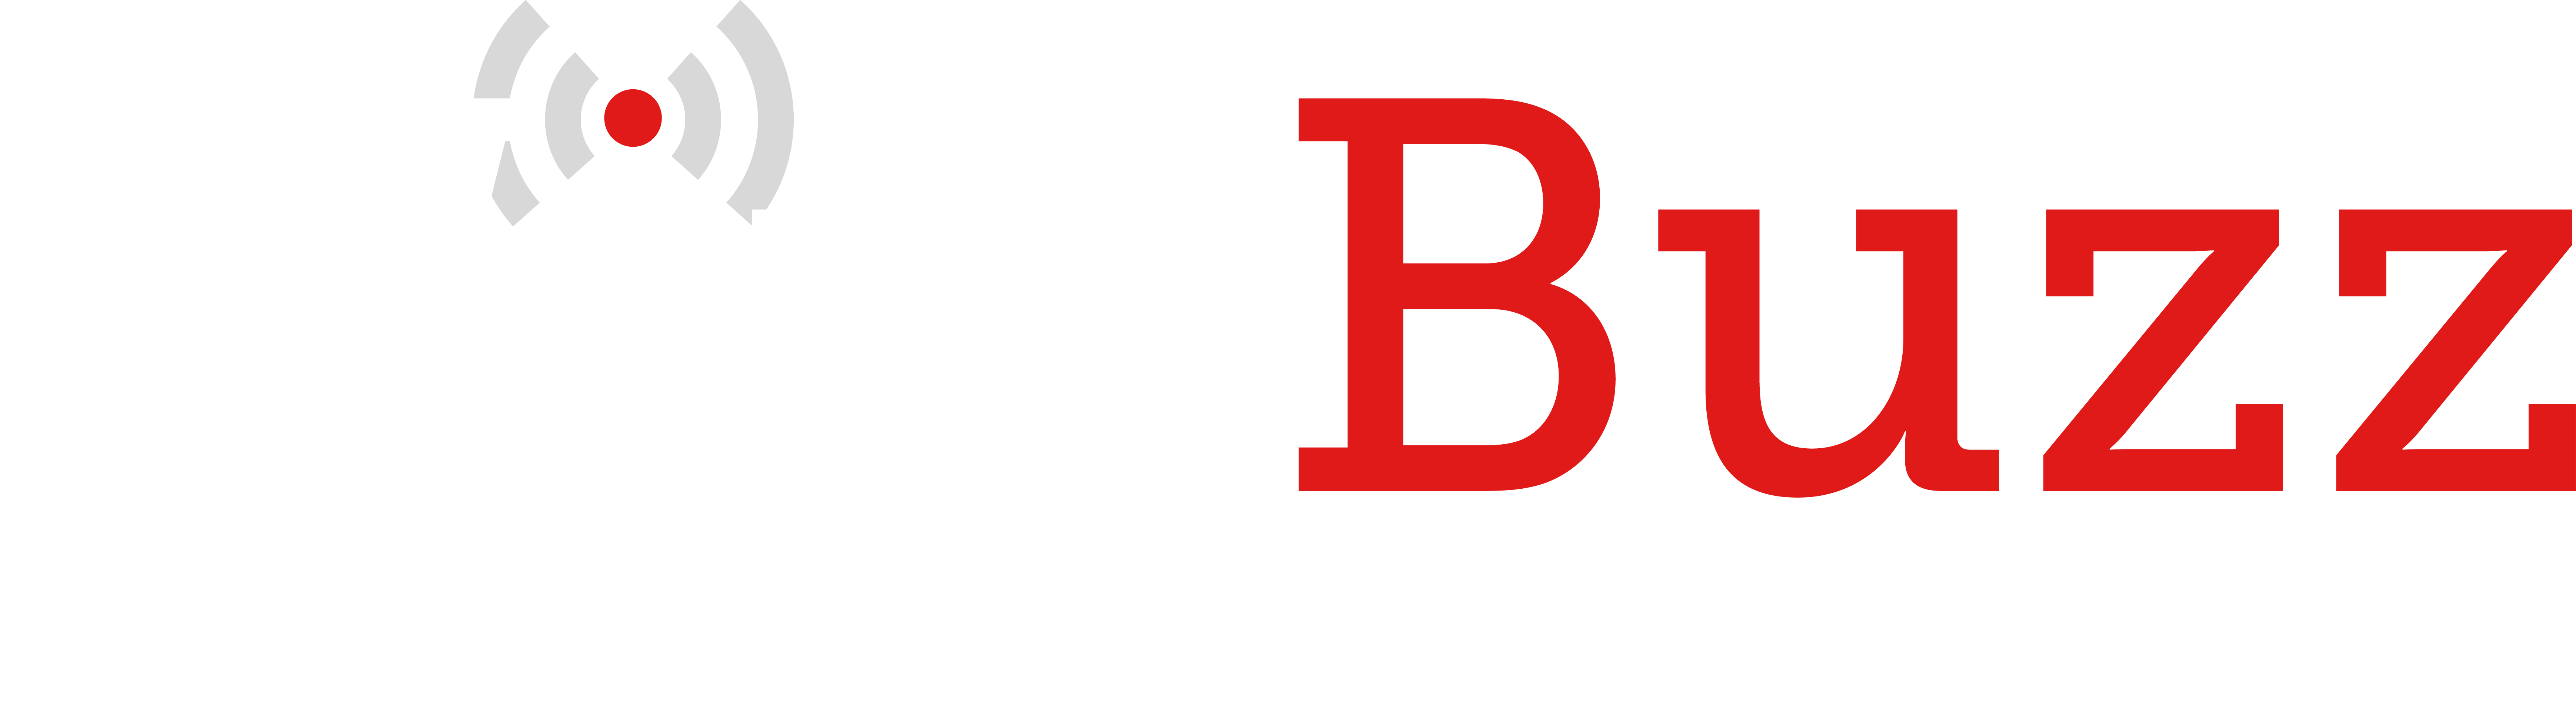 WireBuzz_Logo_White_and_Red_Text_With_Slogan.png